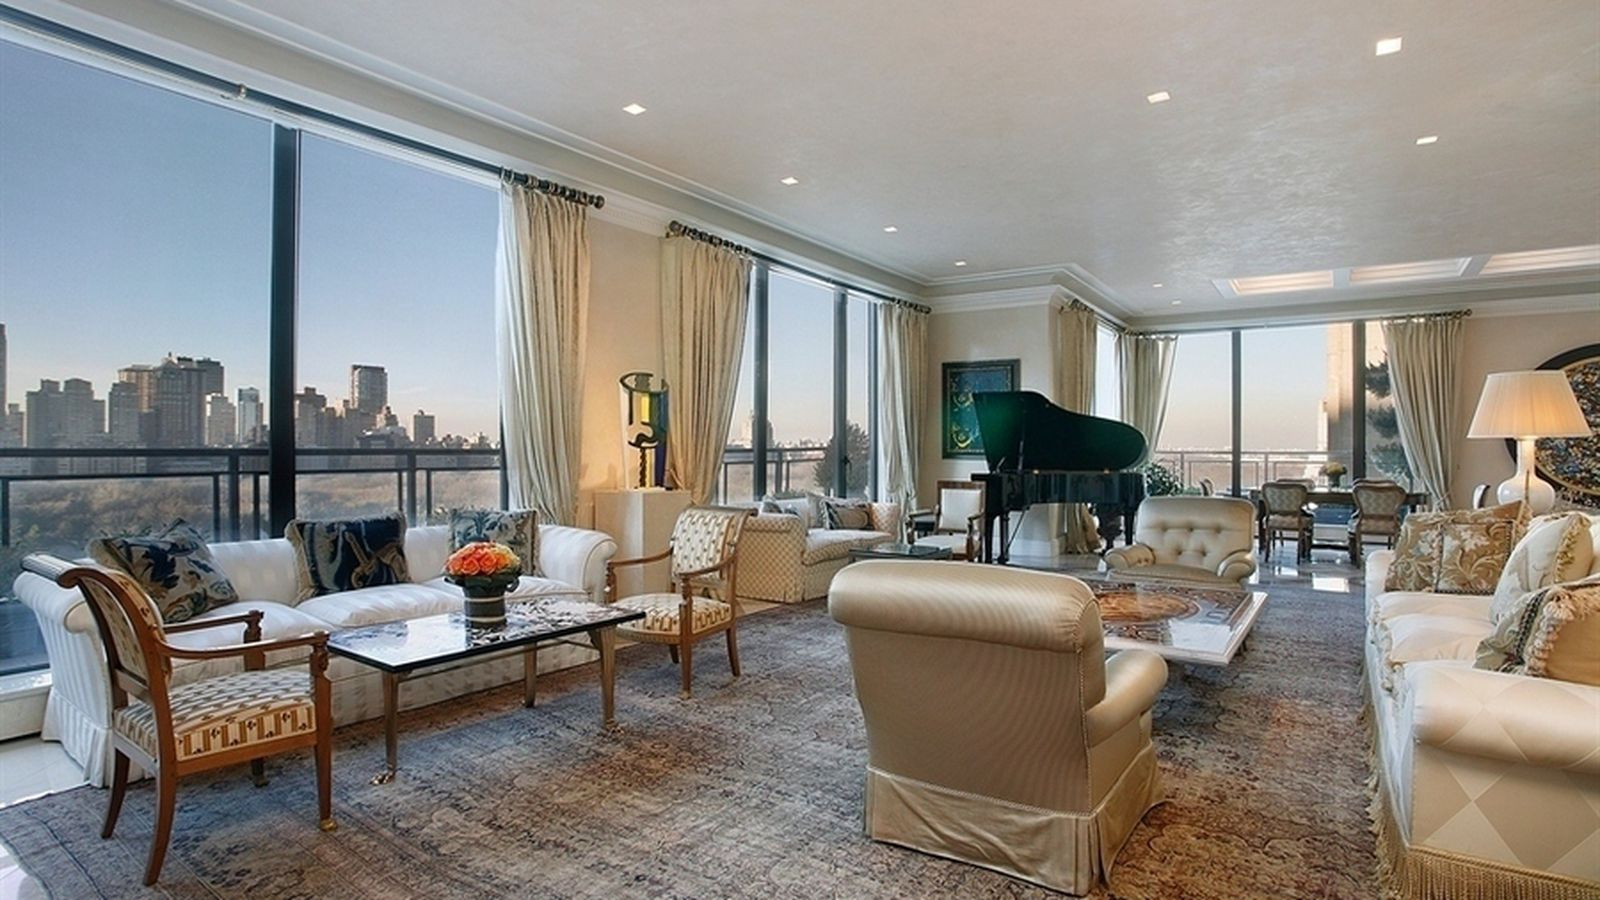 Billionaire David Geffen S Penthouse Renovation Elicits